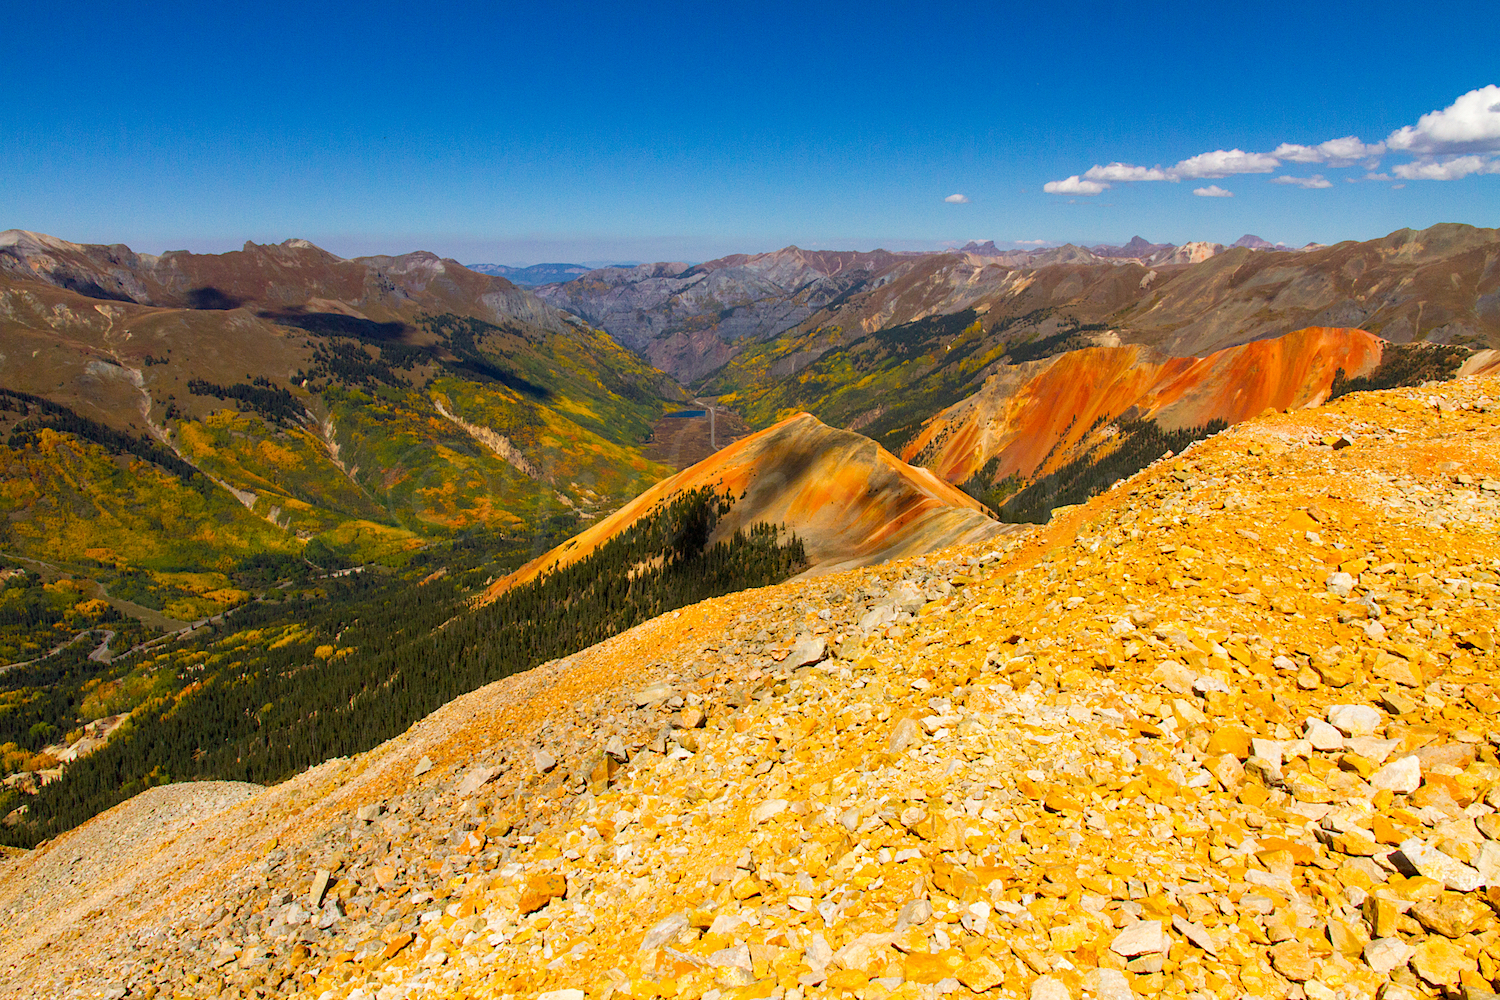 Red Mountain #3, Image # 6317